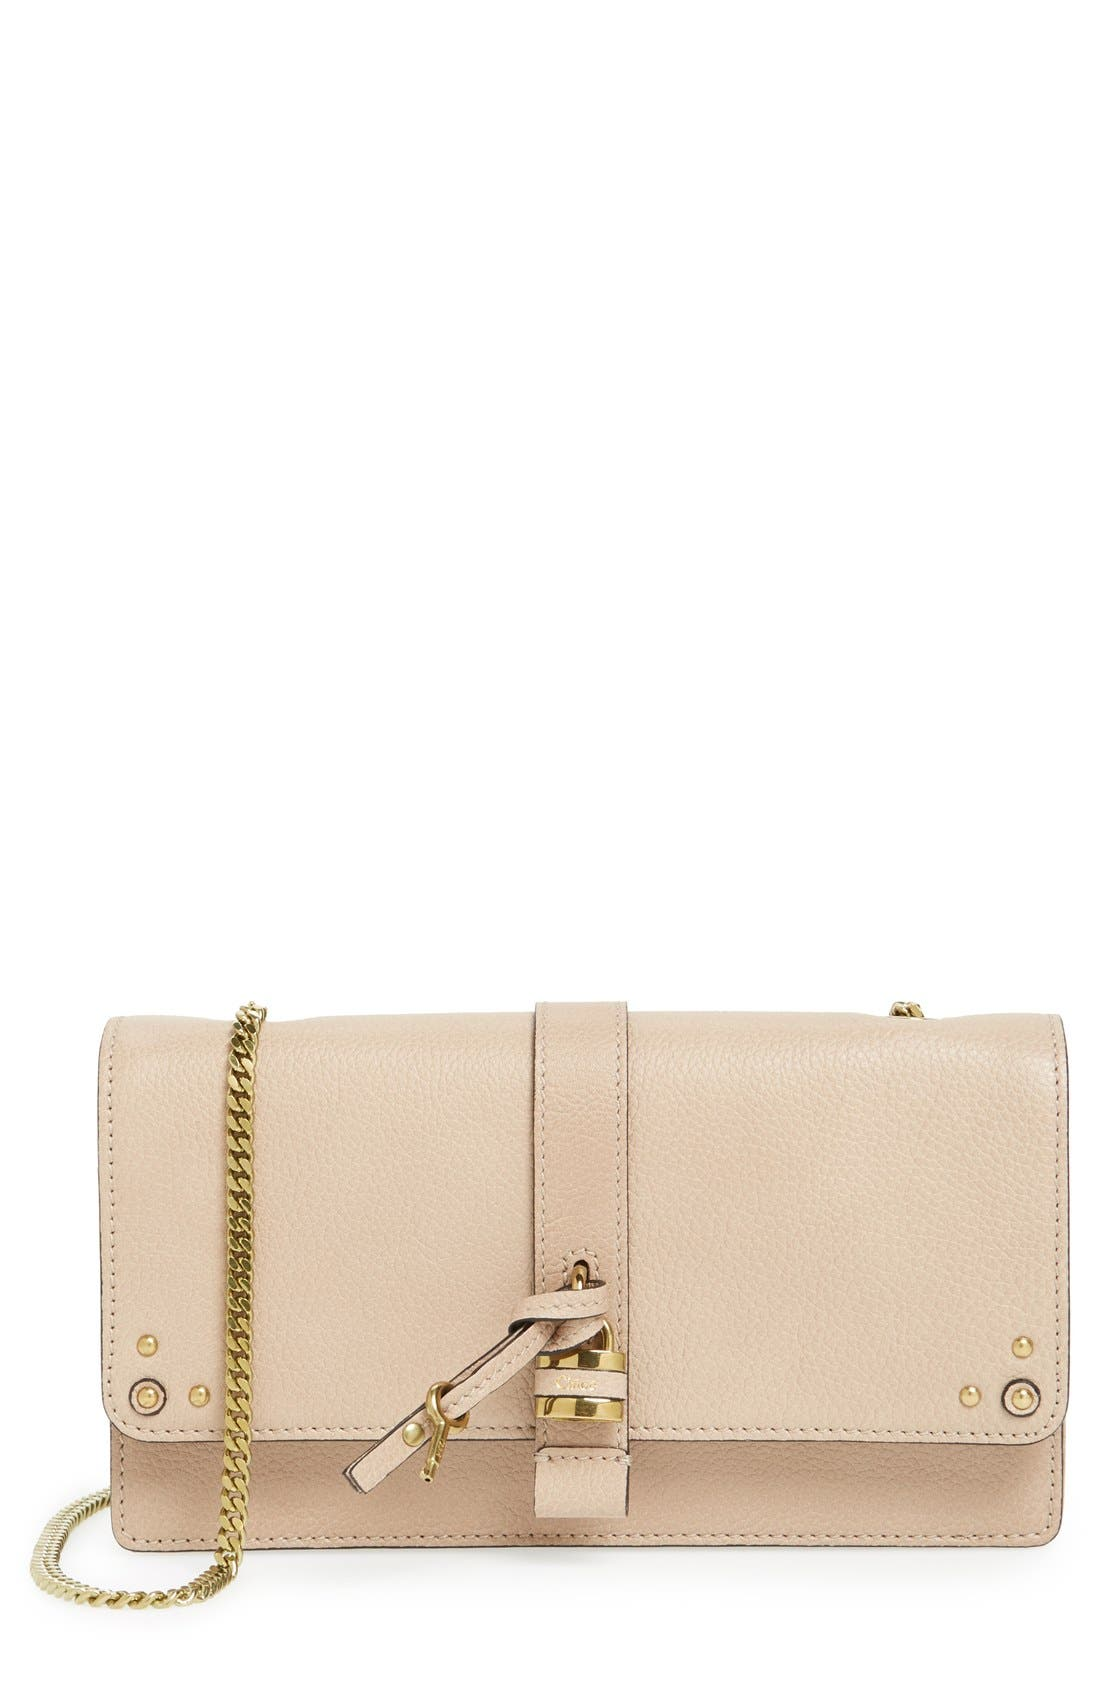 Alternate Image 1 Selected - Chloé 'Aurore' Calfskin Leather Wallet on a Chain